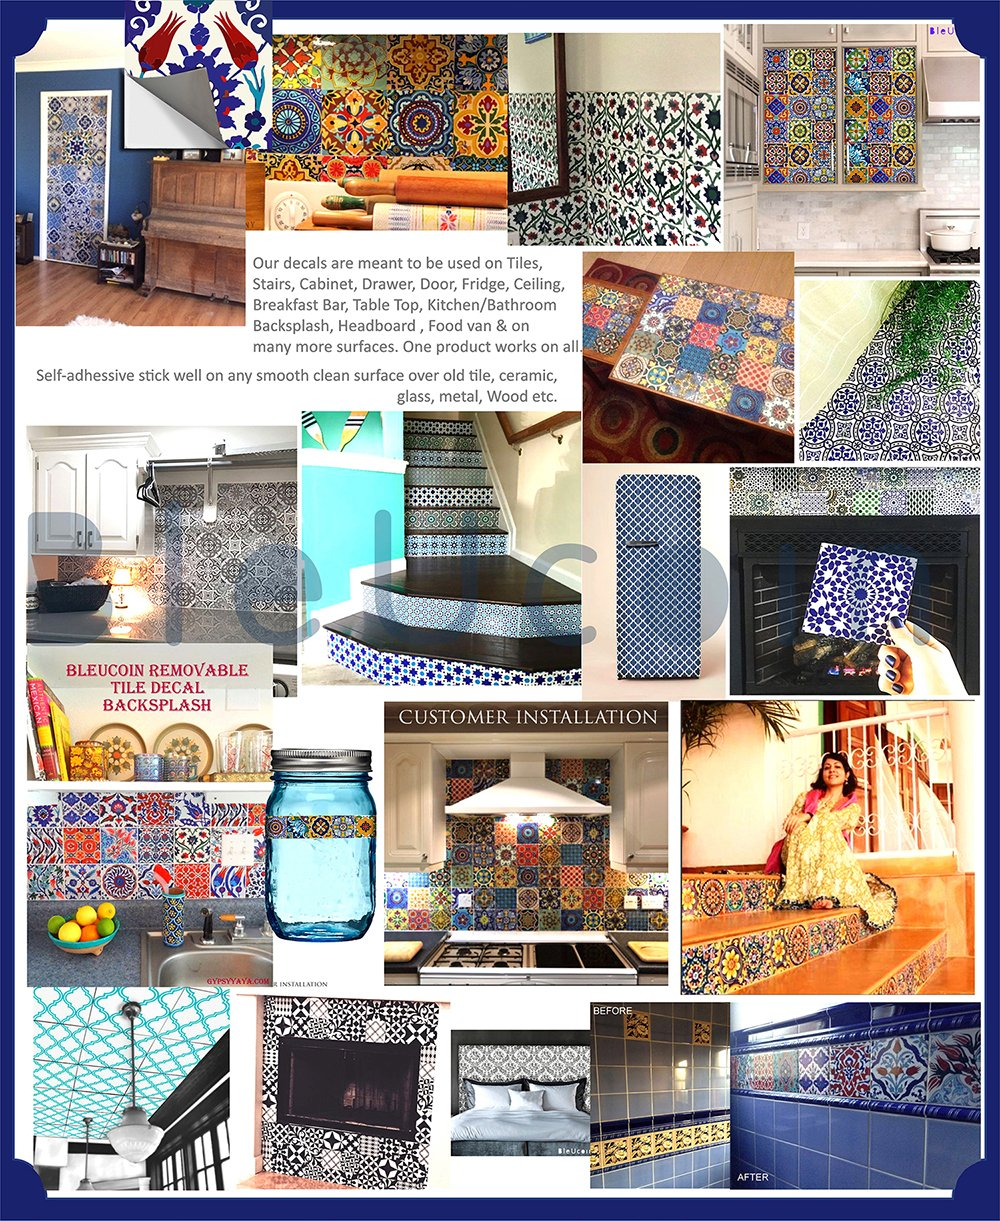 Spanish Mediterranean Talavera Tile Stickers for Kitchen Bathroom Backslash, Removable Stair Riser Decal Peel and Stick Home Decor- 44 Designs - Pack of 44 (8'' x 8'' Inches) by Bleucoin (Image #6)